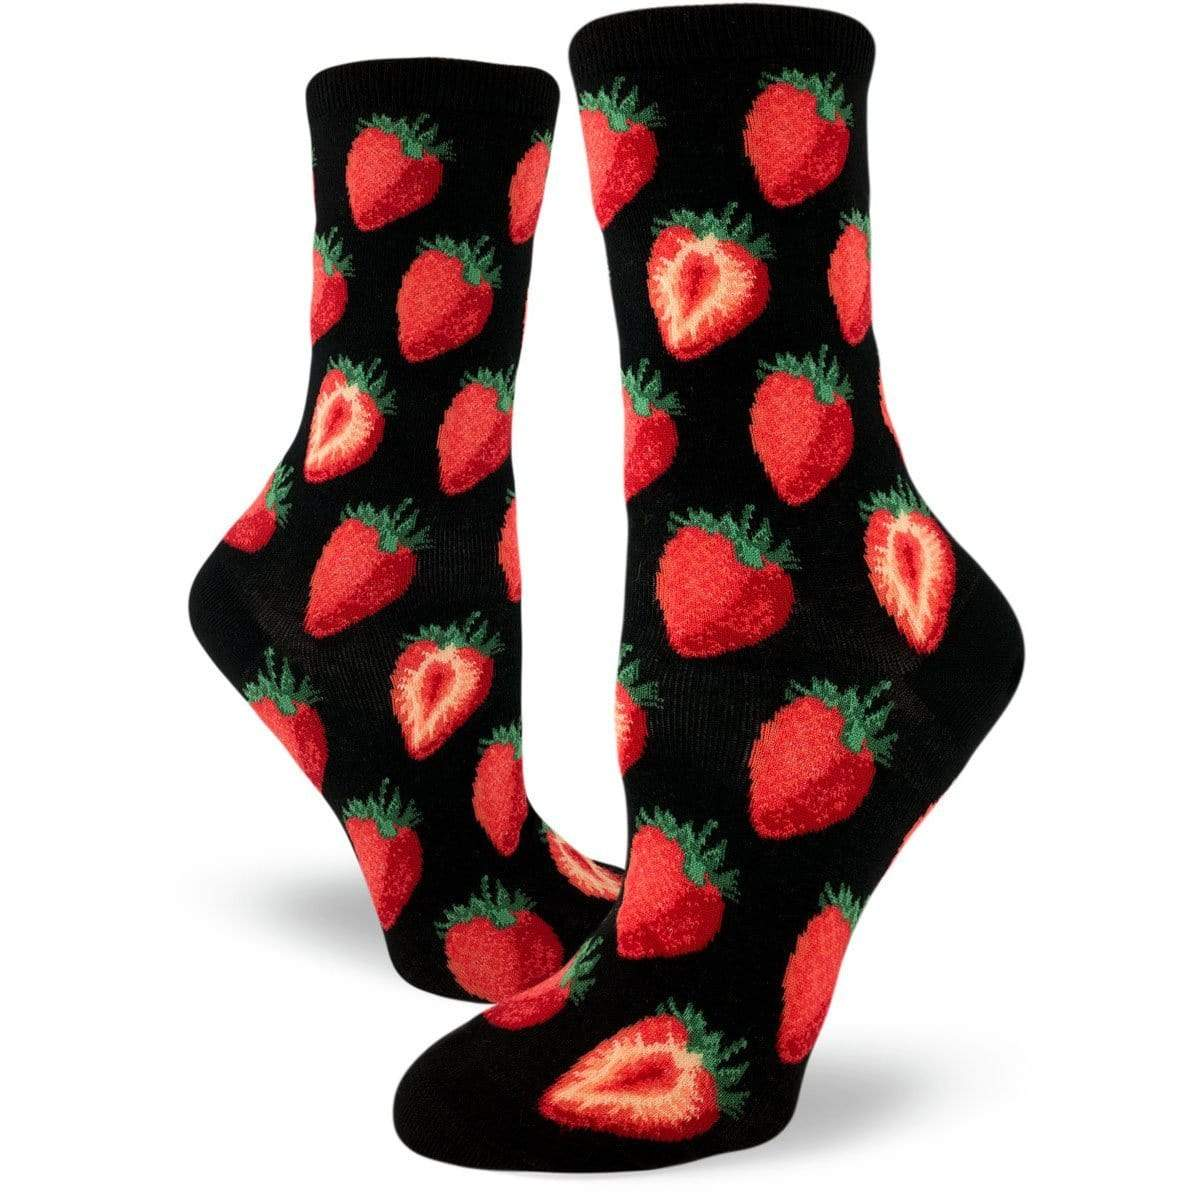 Strawberry Crew Socks for Women